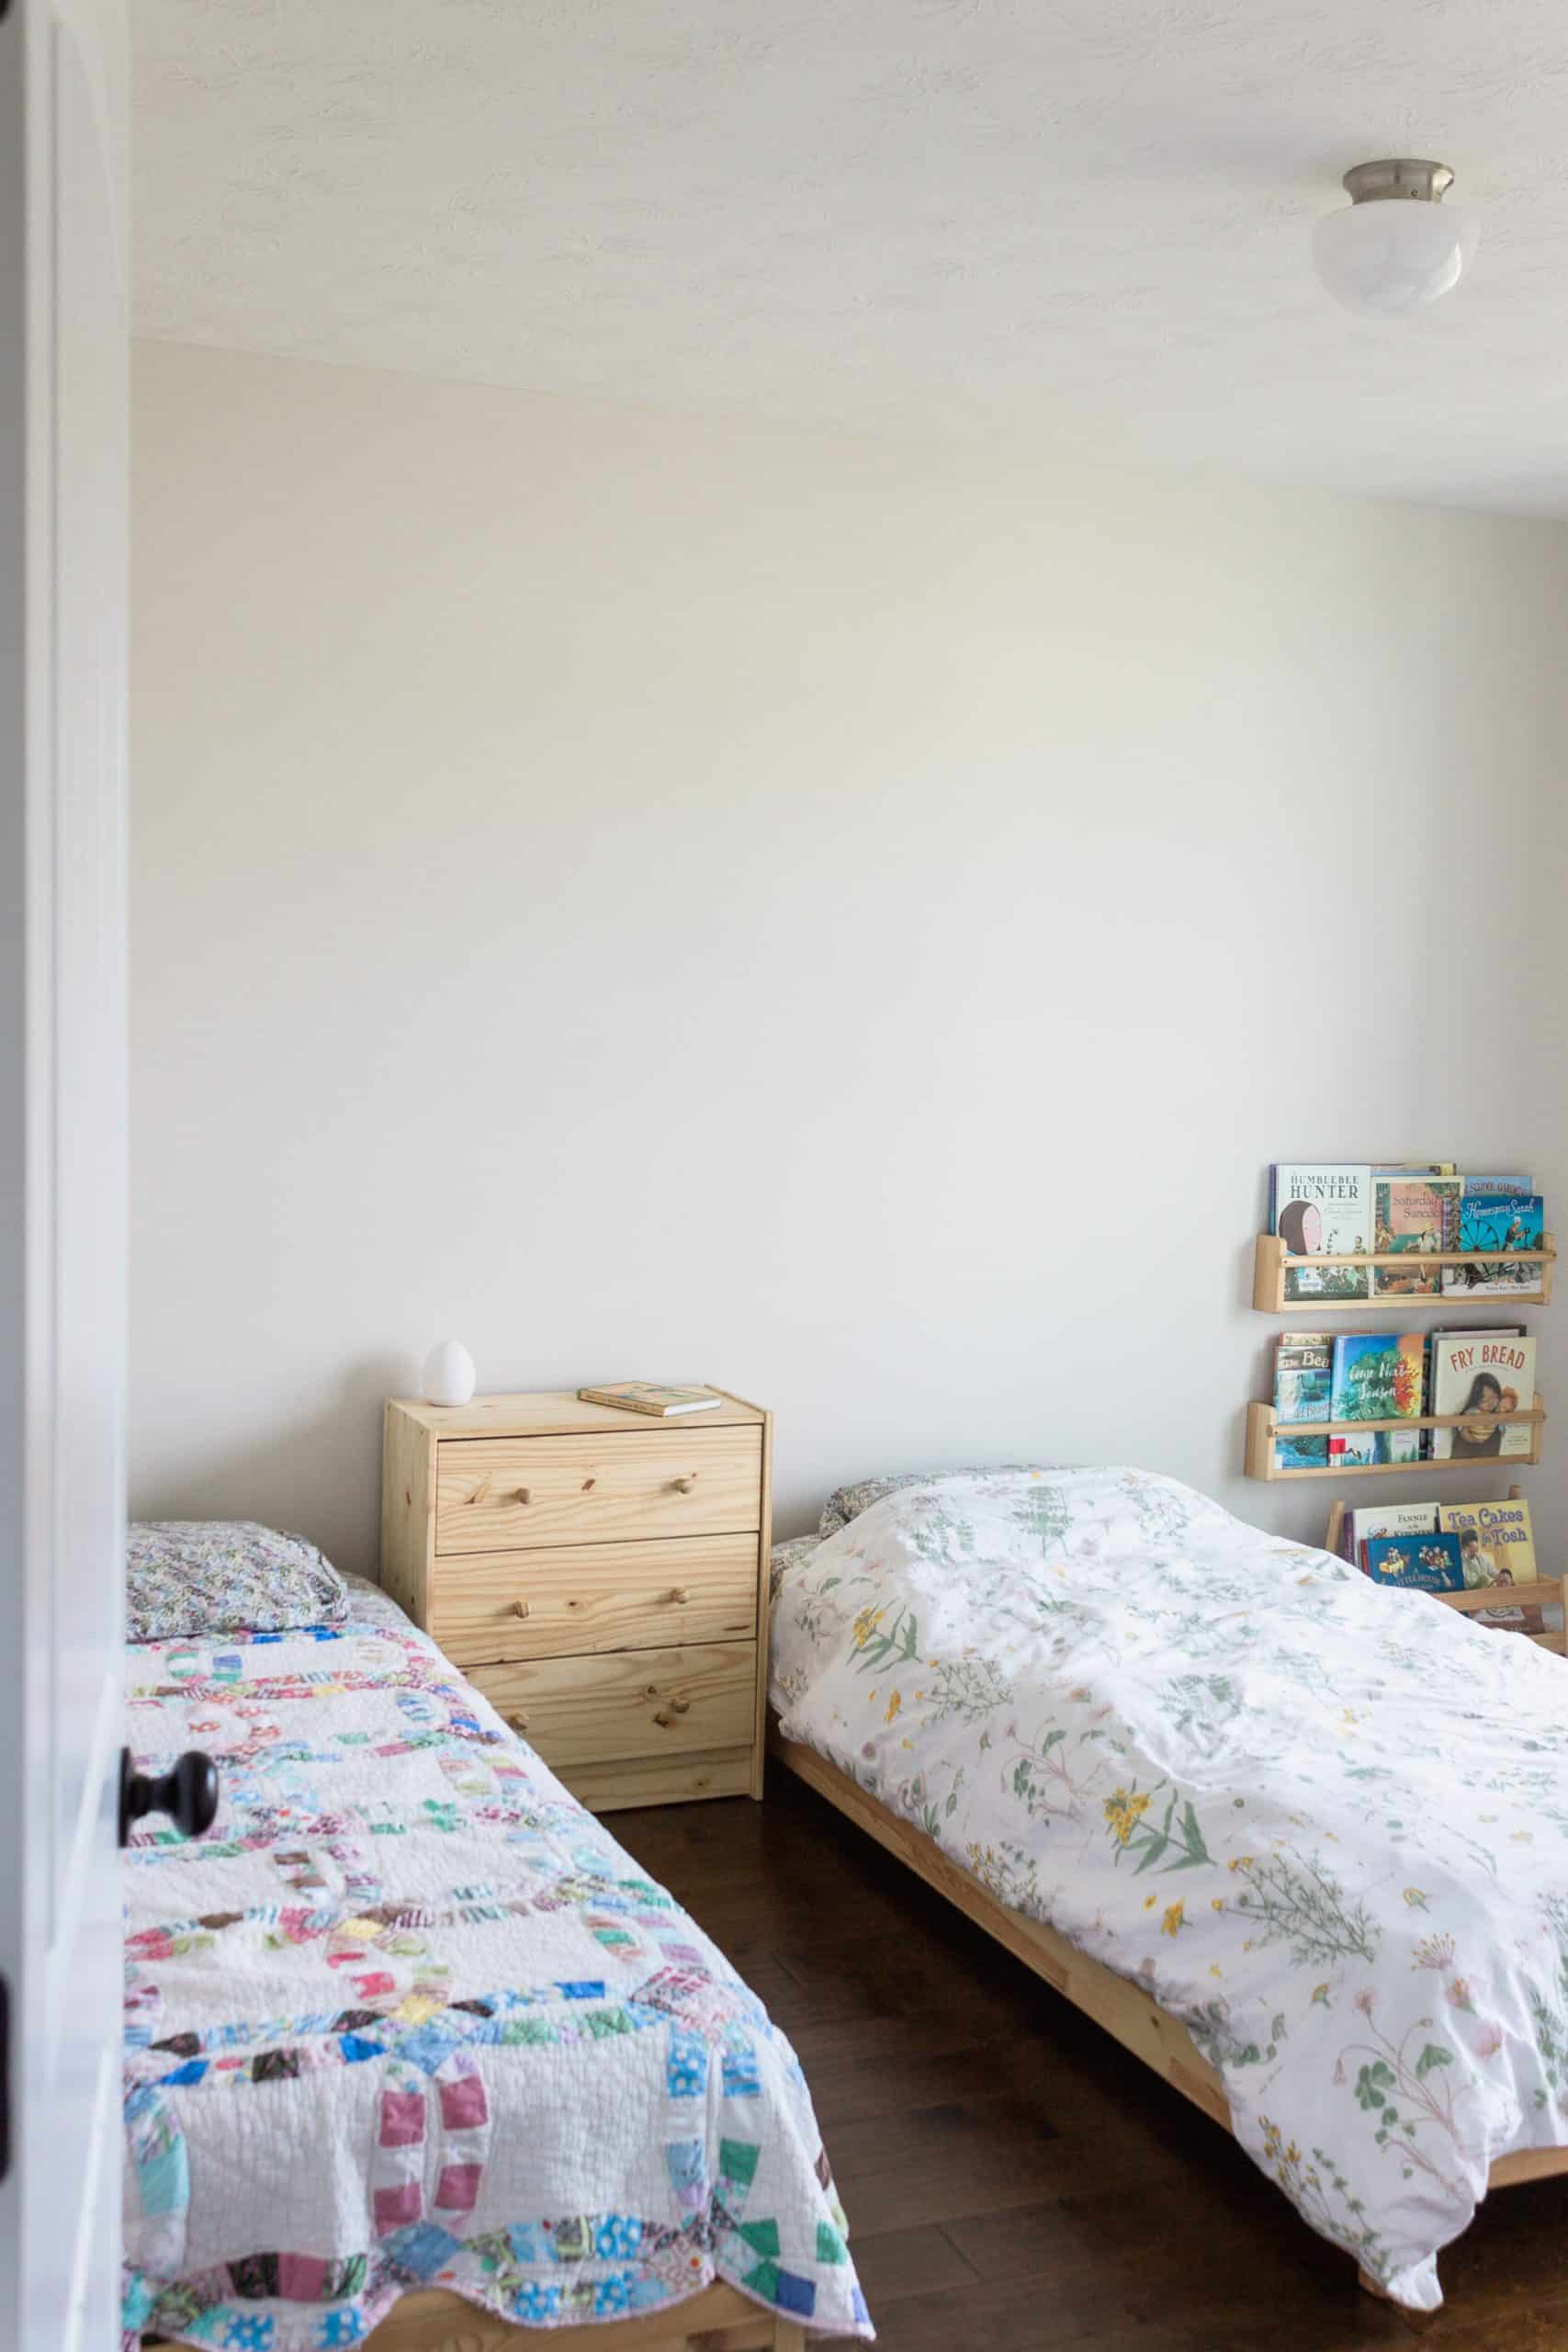 A 'Before' picture of a shared children's bedroom. Follow along to see our progress on our Montessori-friendly makeover as part of the Spring 2020 One Room Challenge!